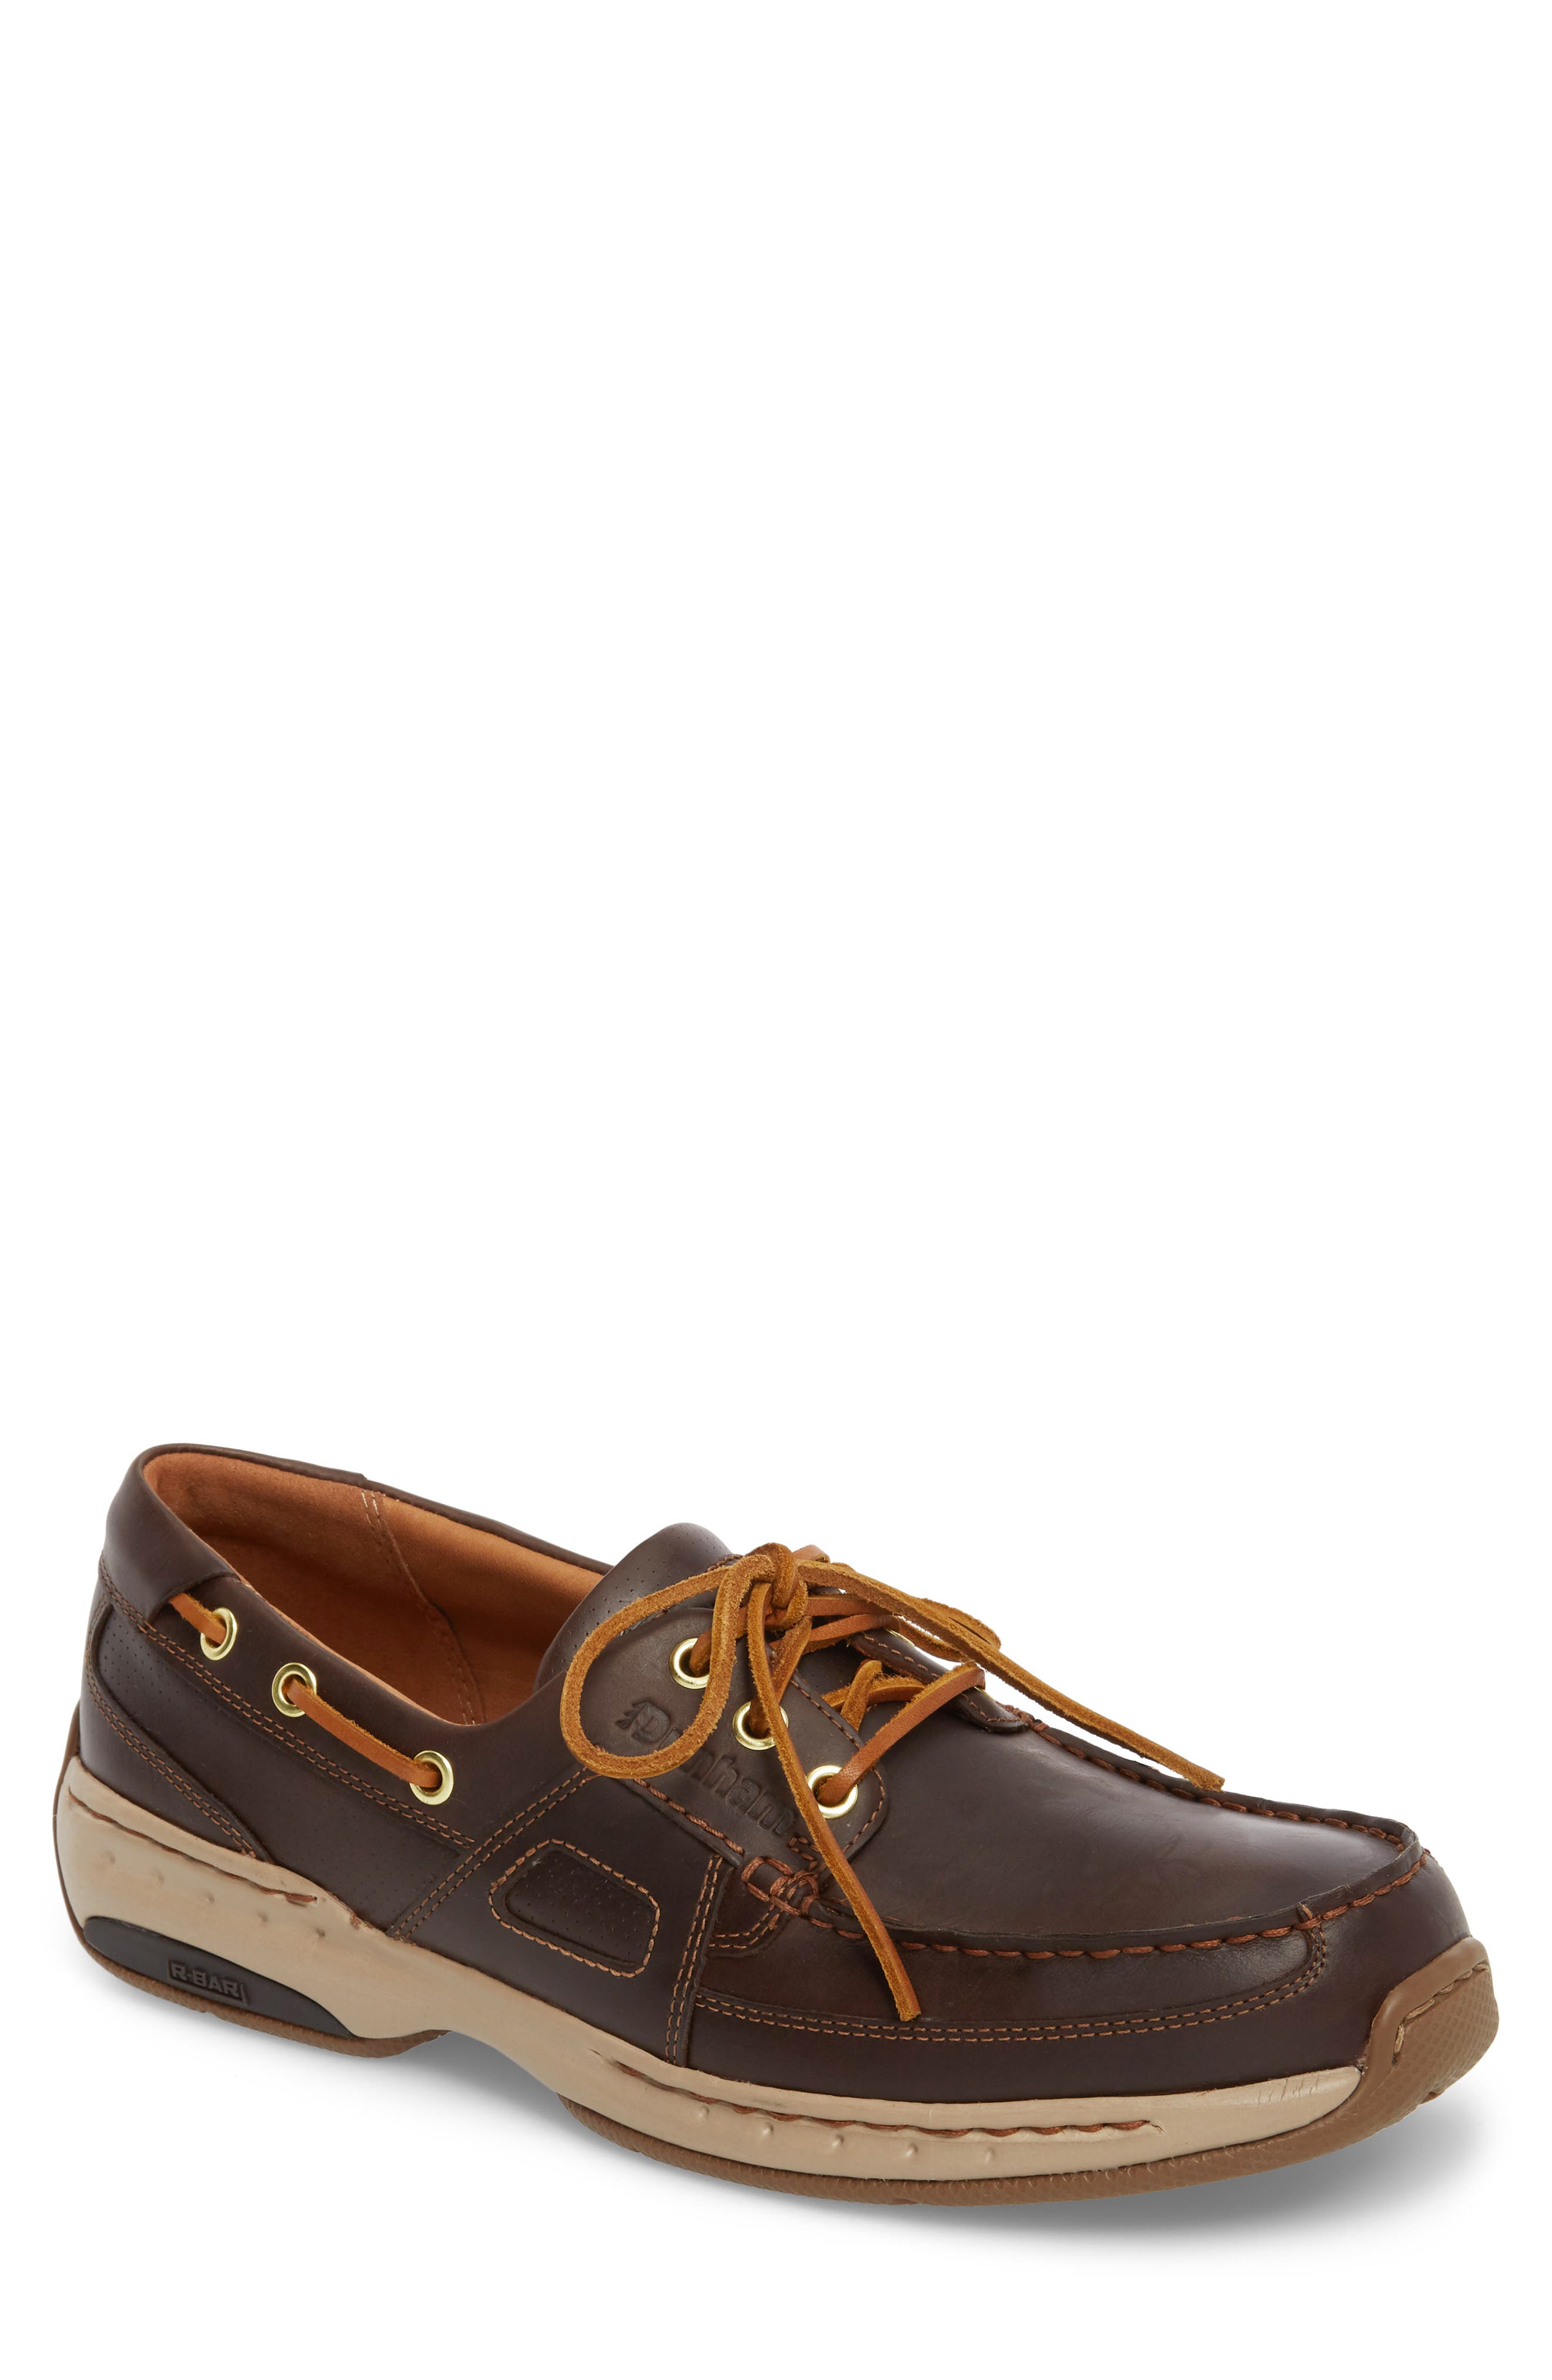 DUNHAM, LTD Water Resistant Boat Shoe, Main thumbnail 1, color, TAN LEATHER